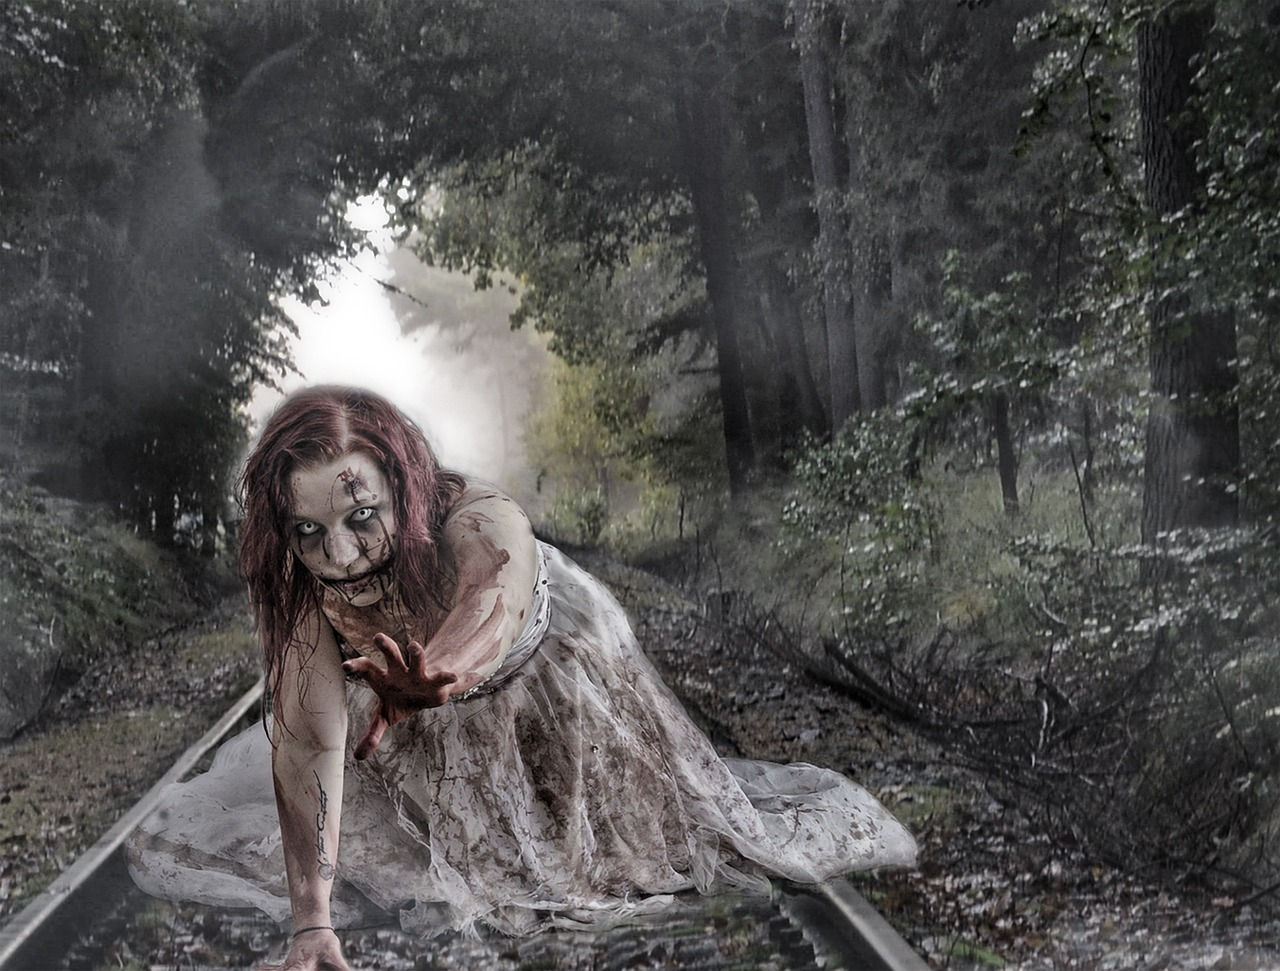 Does Zombie Exist_Scientific Evidence says yes it Does